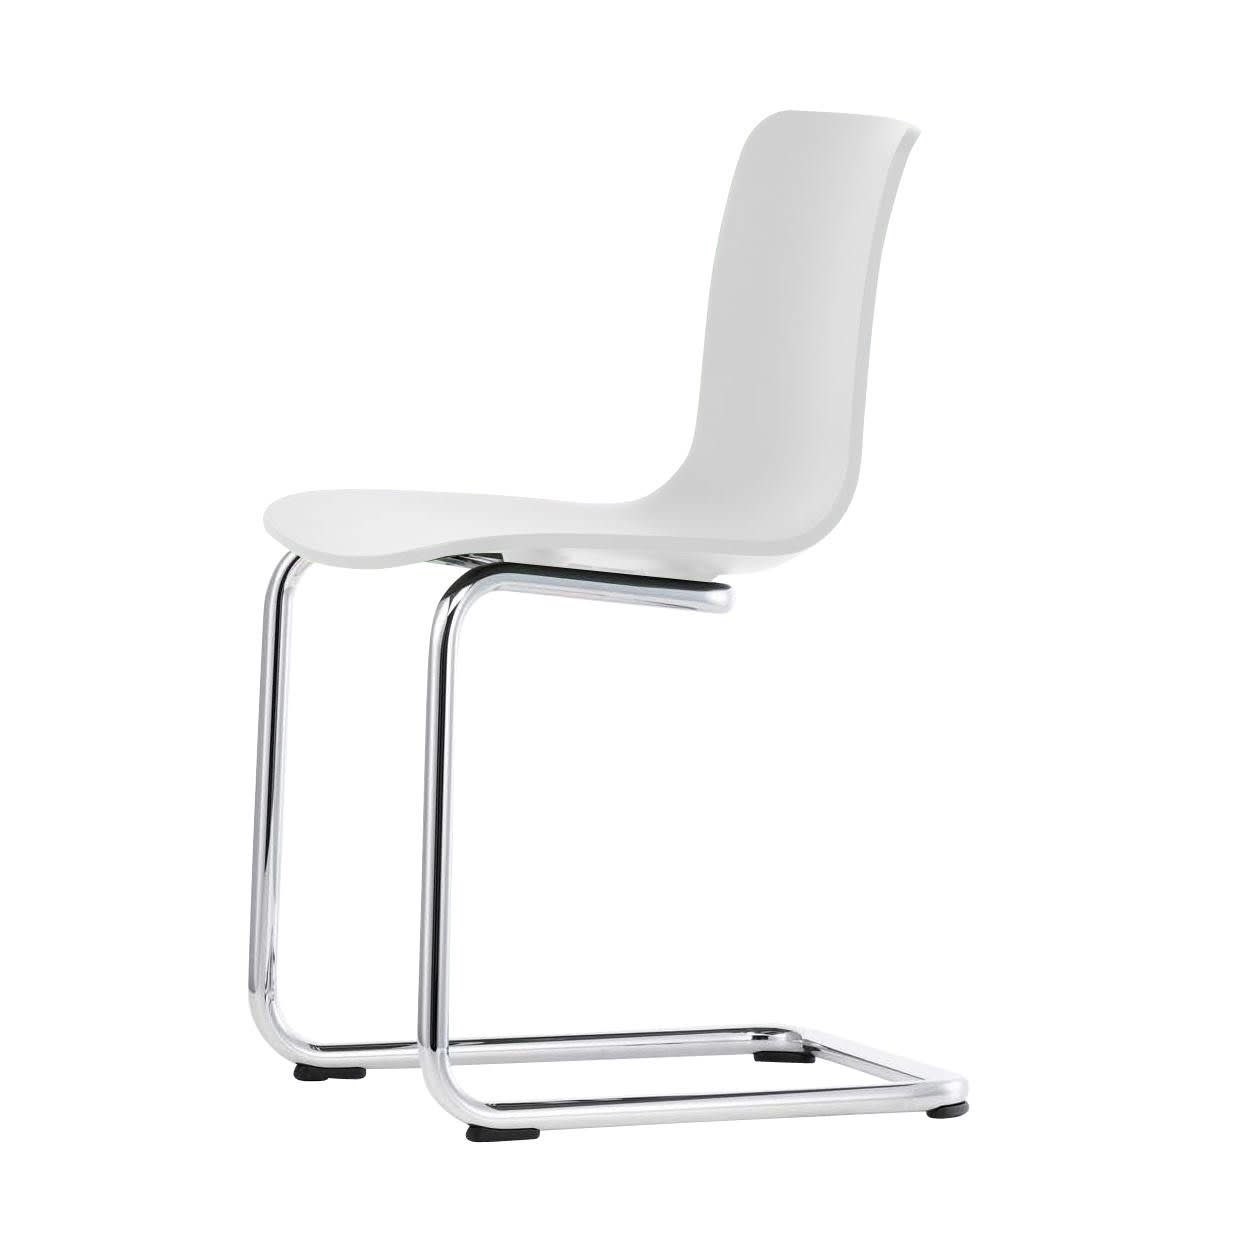 HAL cantilever - +$82.50